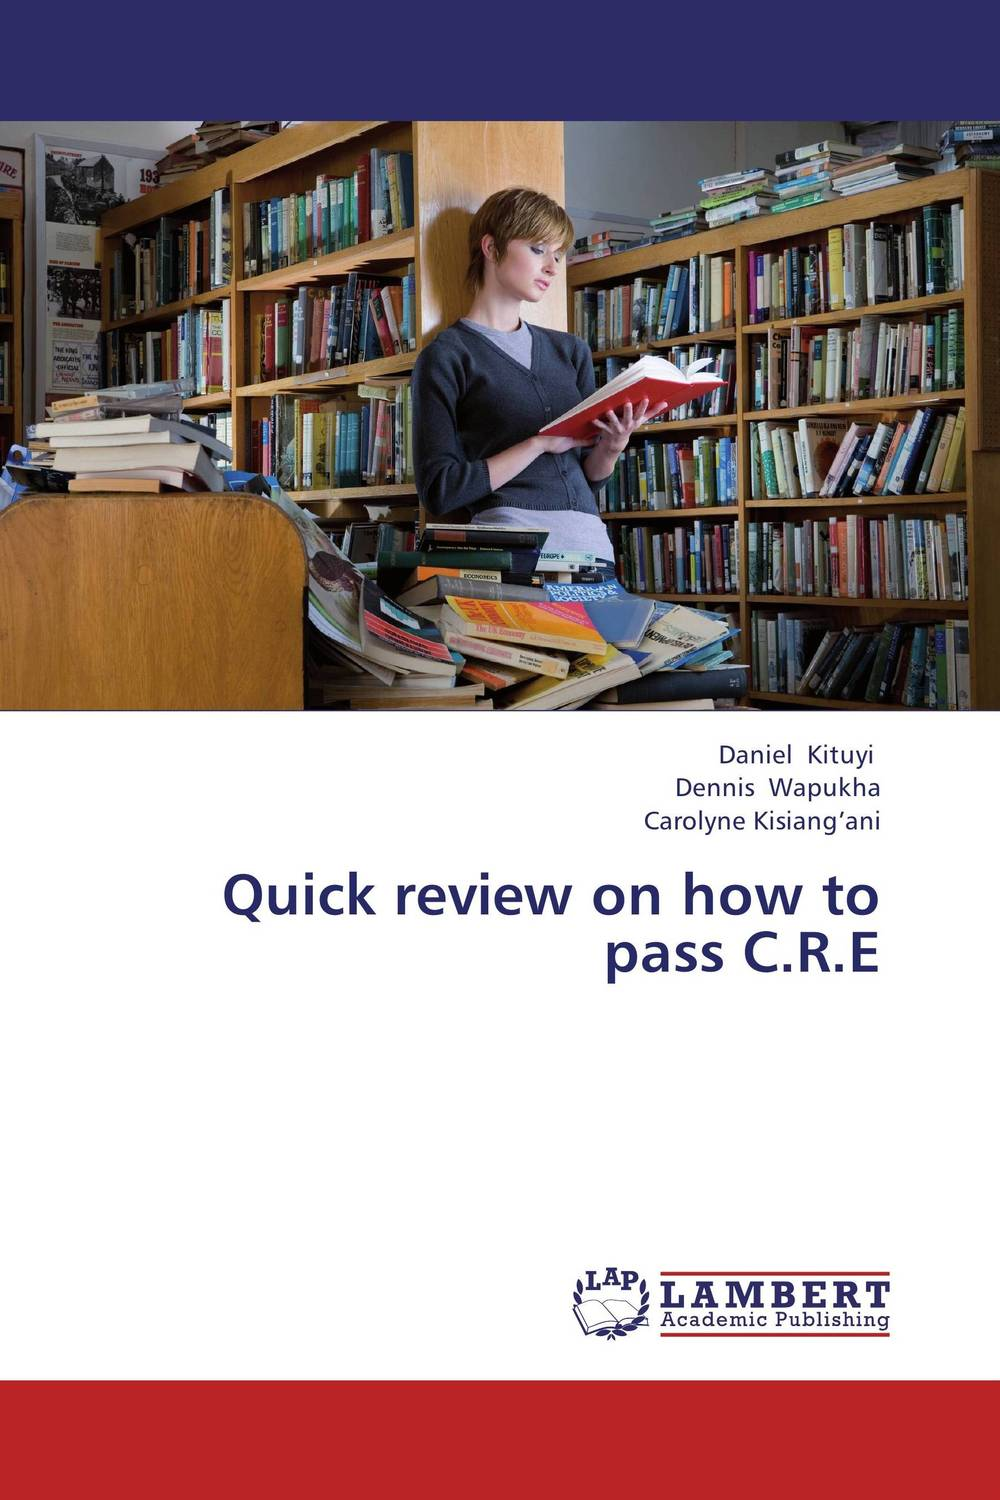 Quick review on how to pass C.R.E